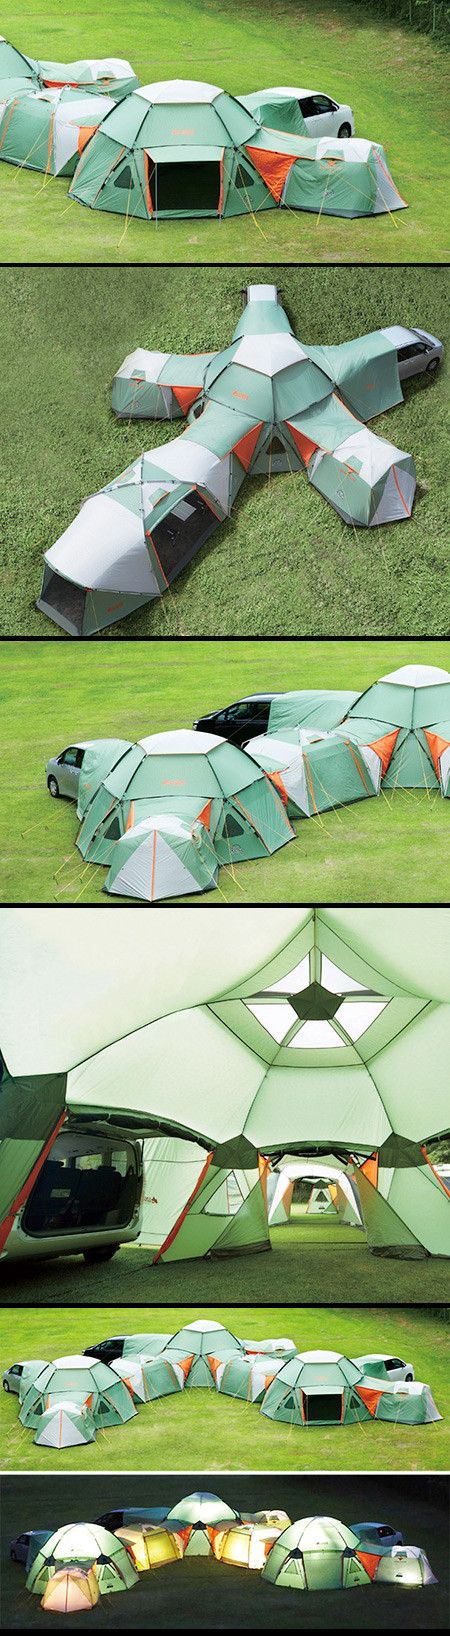 want to go camping with this